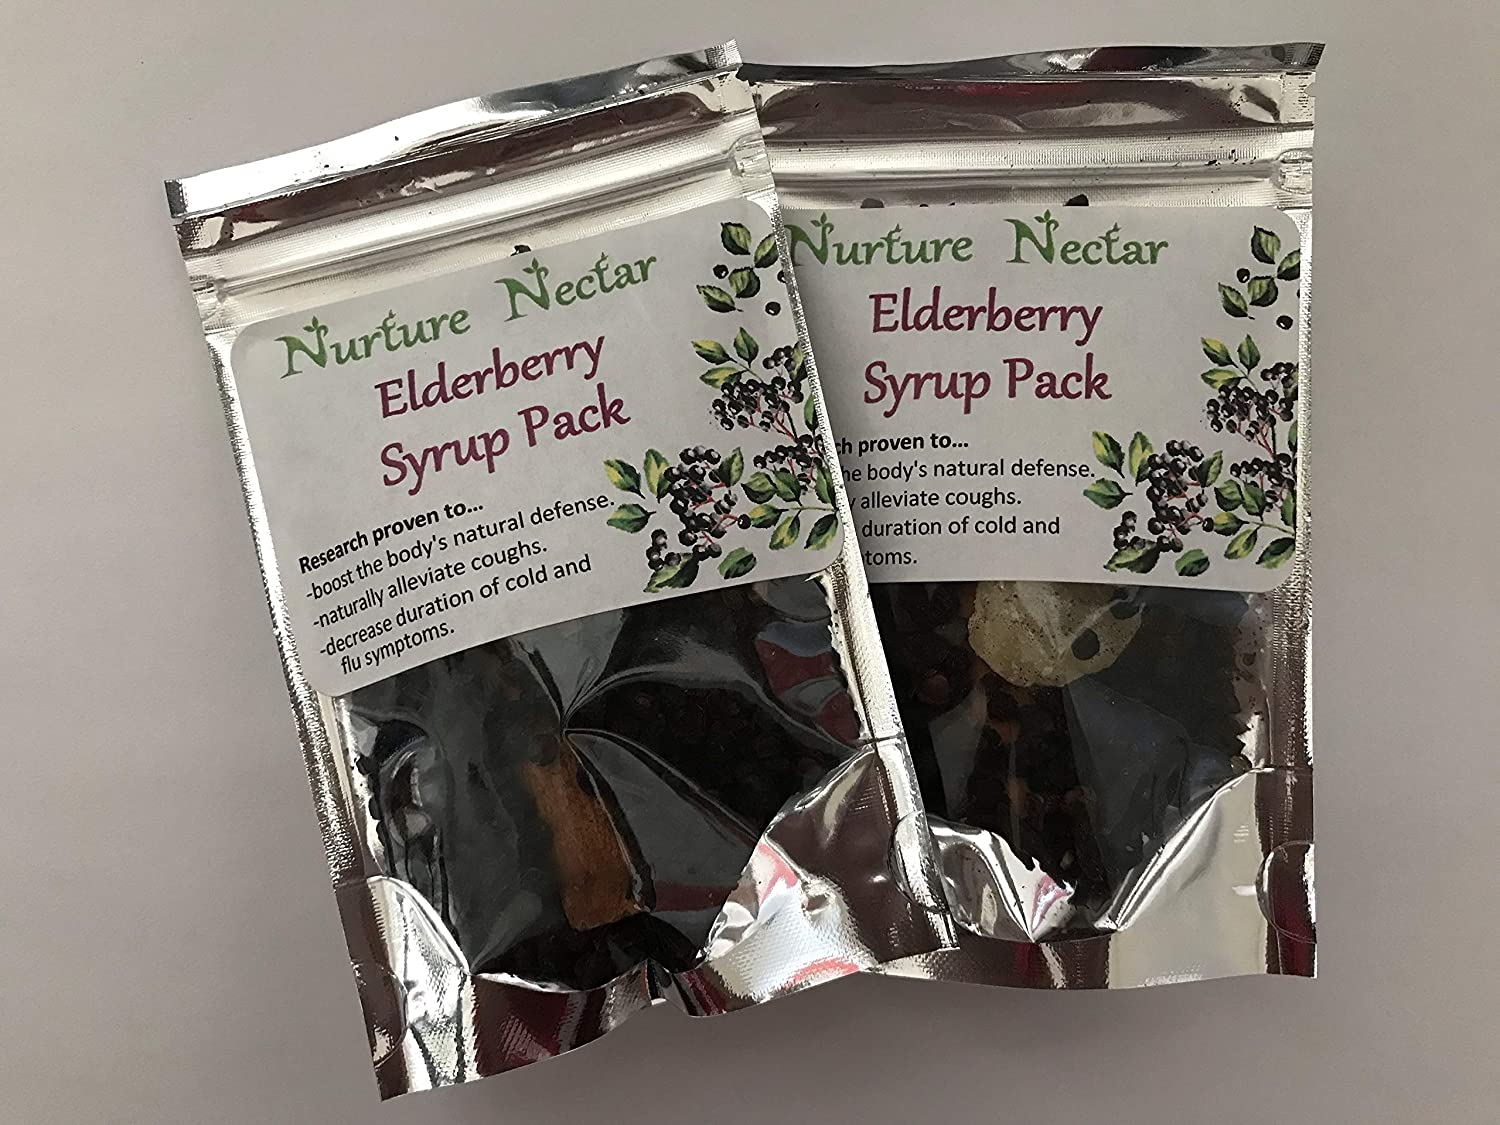 Nurture Nectar Elderberry Syrup Kit - 2 Pack | DIY Immune Support. Just add Water and Honey for a Make at Home Syrup. Each kit Makes 10oz.